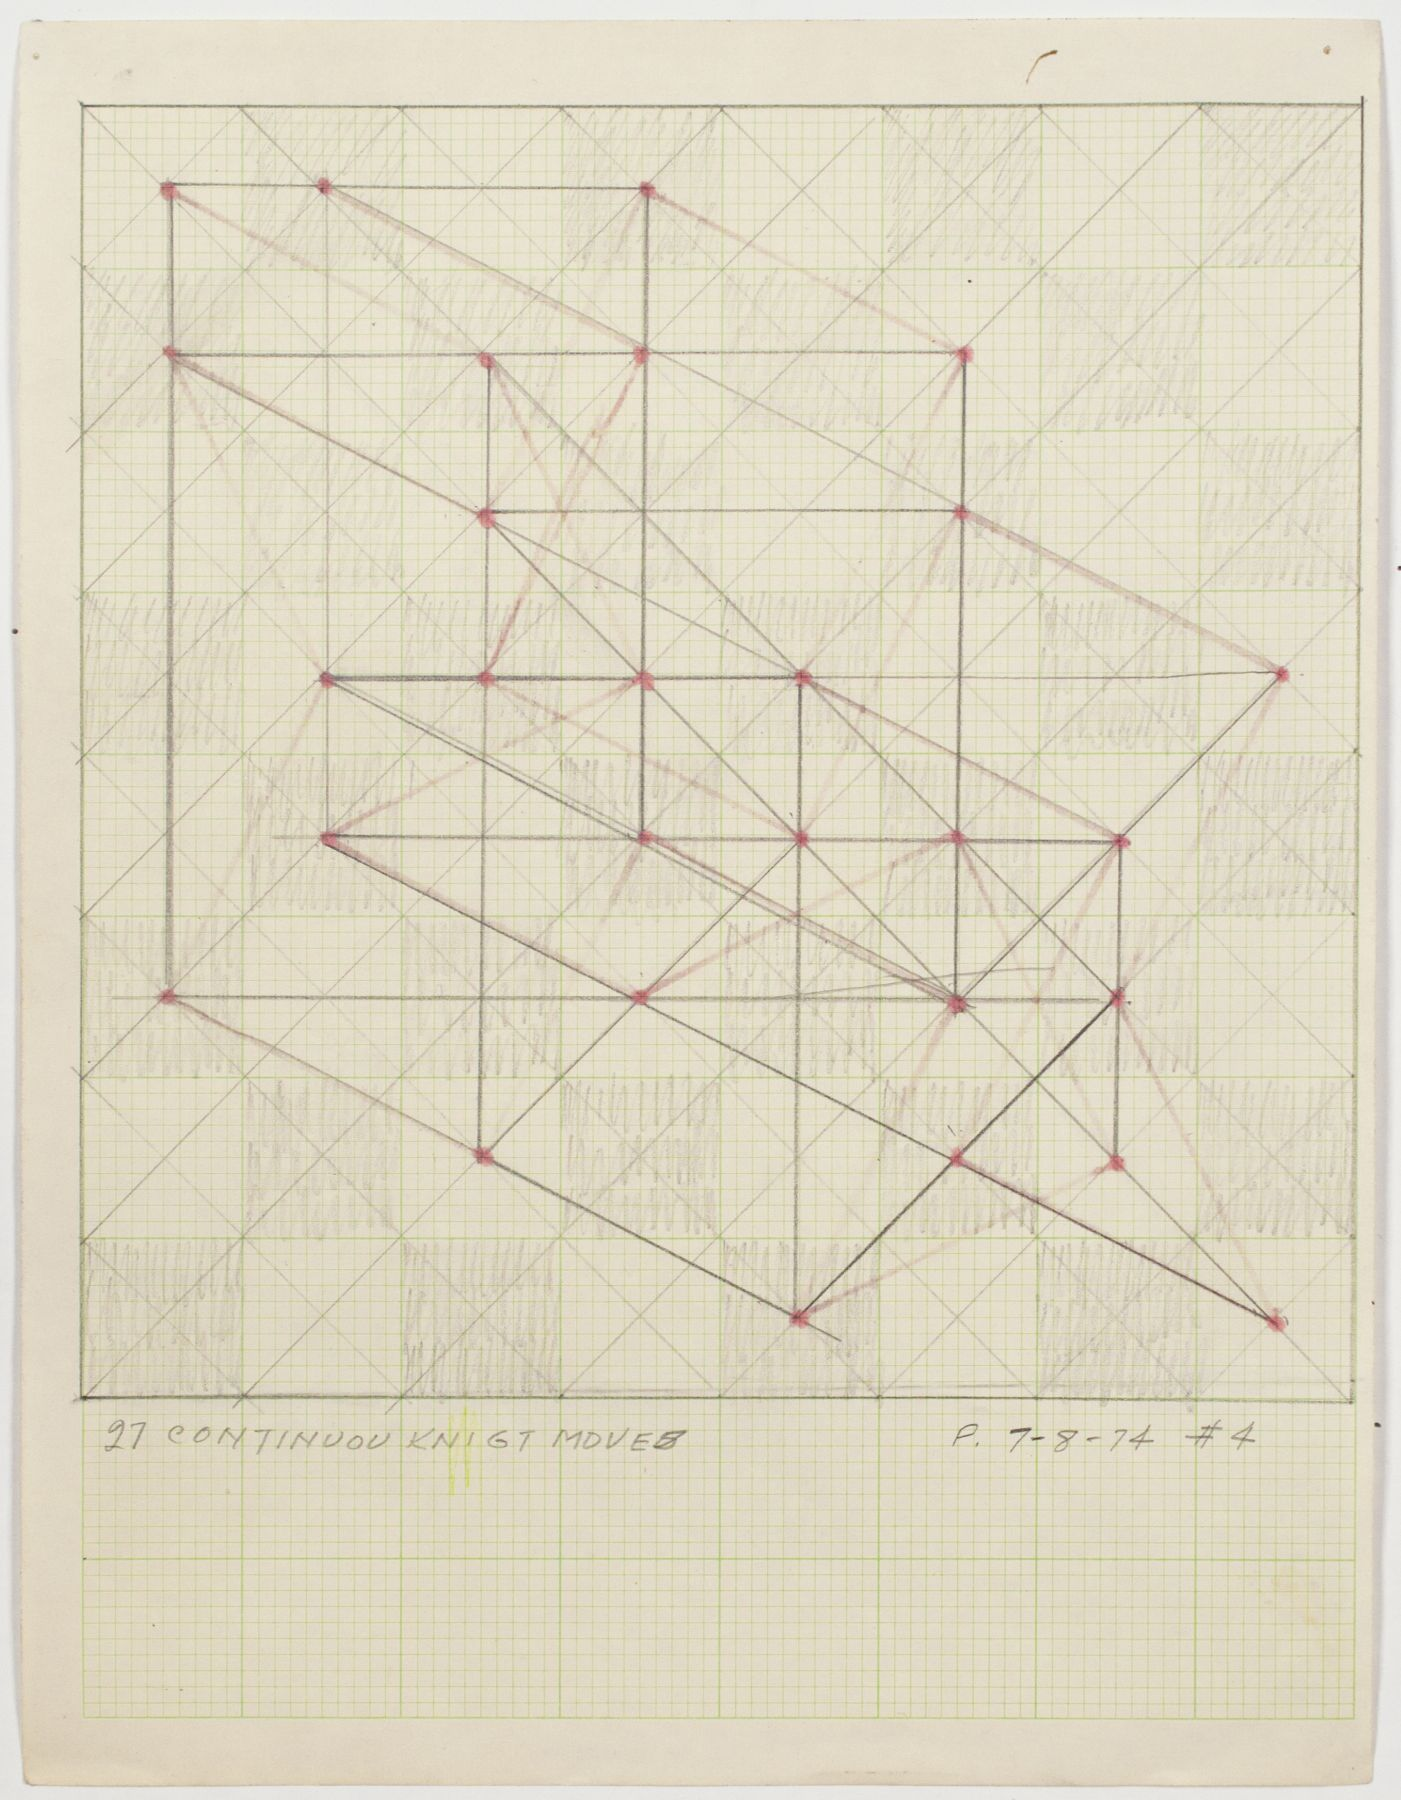 Jack Tworkov, 27 Continuous Knight Moves (PT 74 #4), 1974